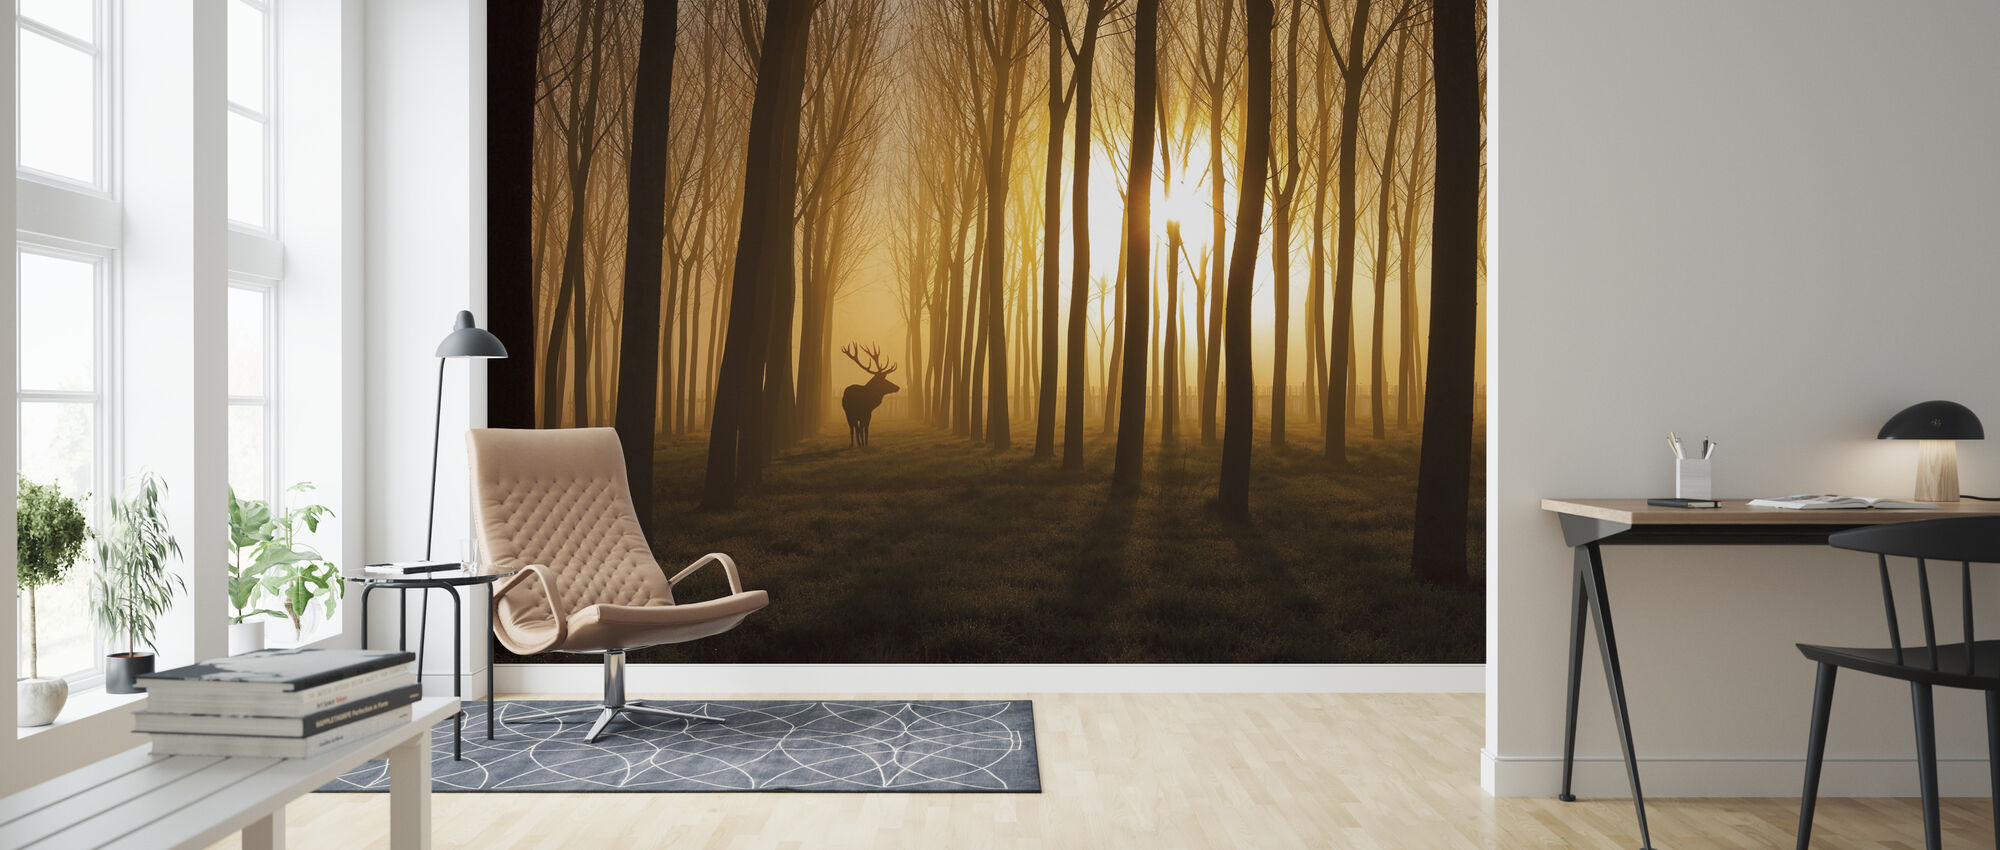 Once Upon a Time - Wallpaper - Living Room